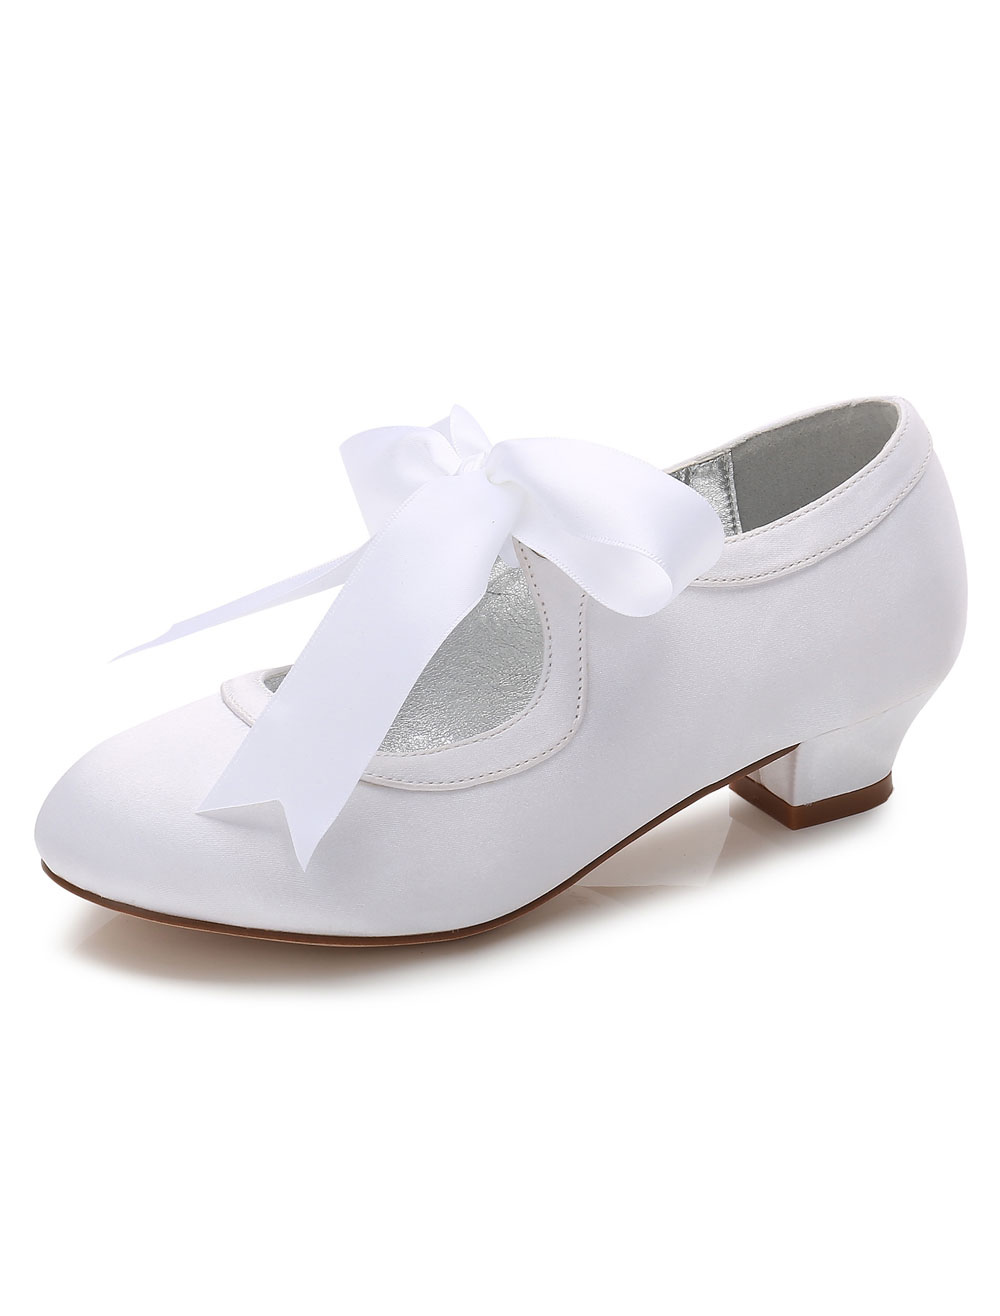 White Flower Girls Shoes Bows Chunky Heel Round Toe Pumps Party